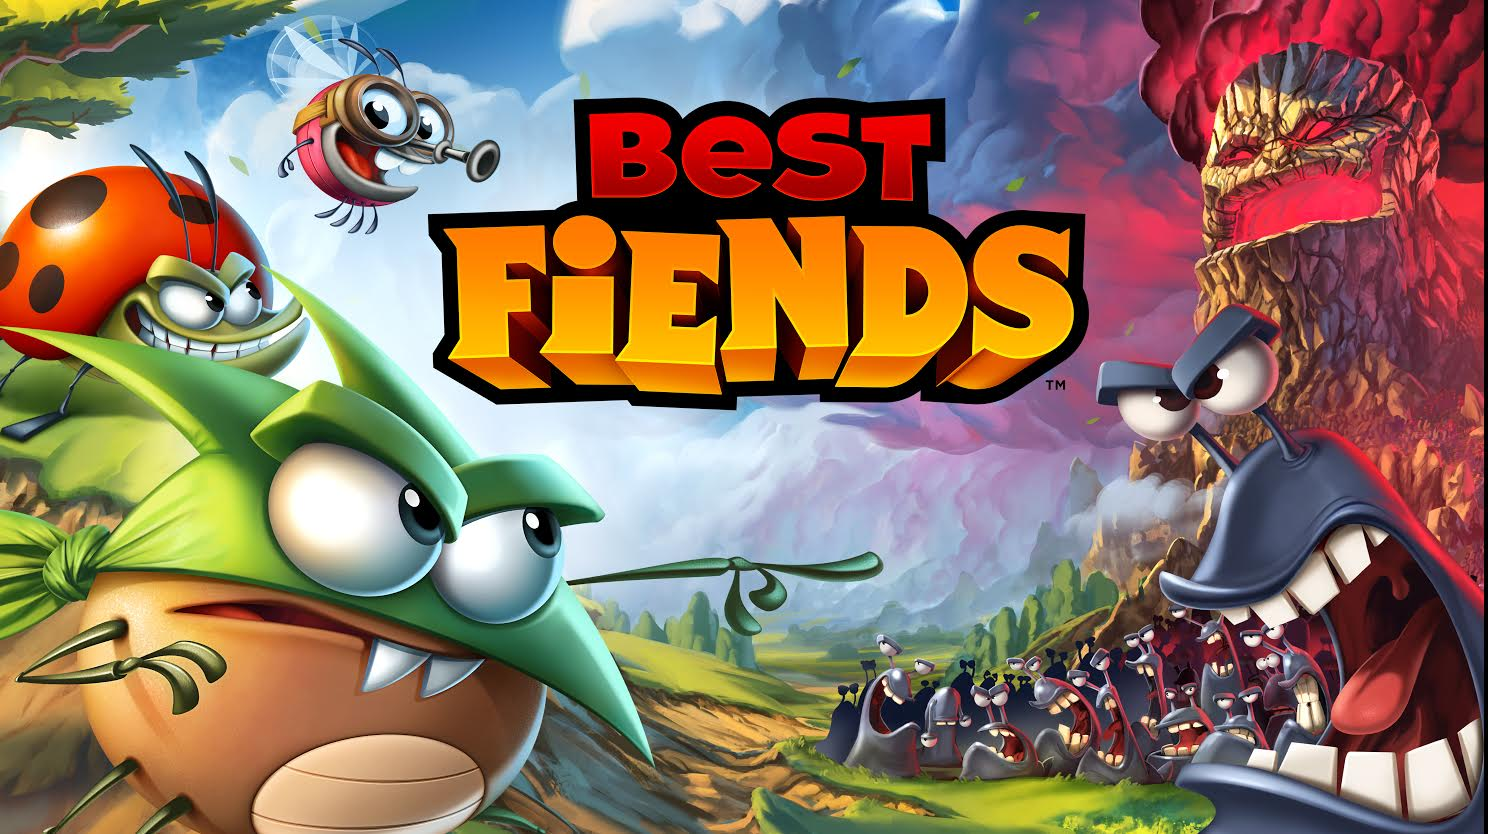 F2P puzzler Best Fiends from ex-Rovio devs sees heroic bugs and nasty slugs at war